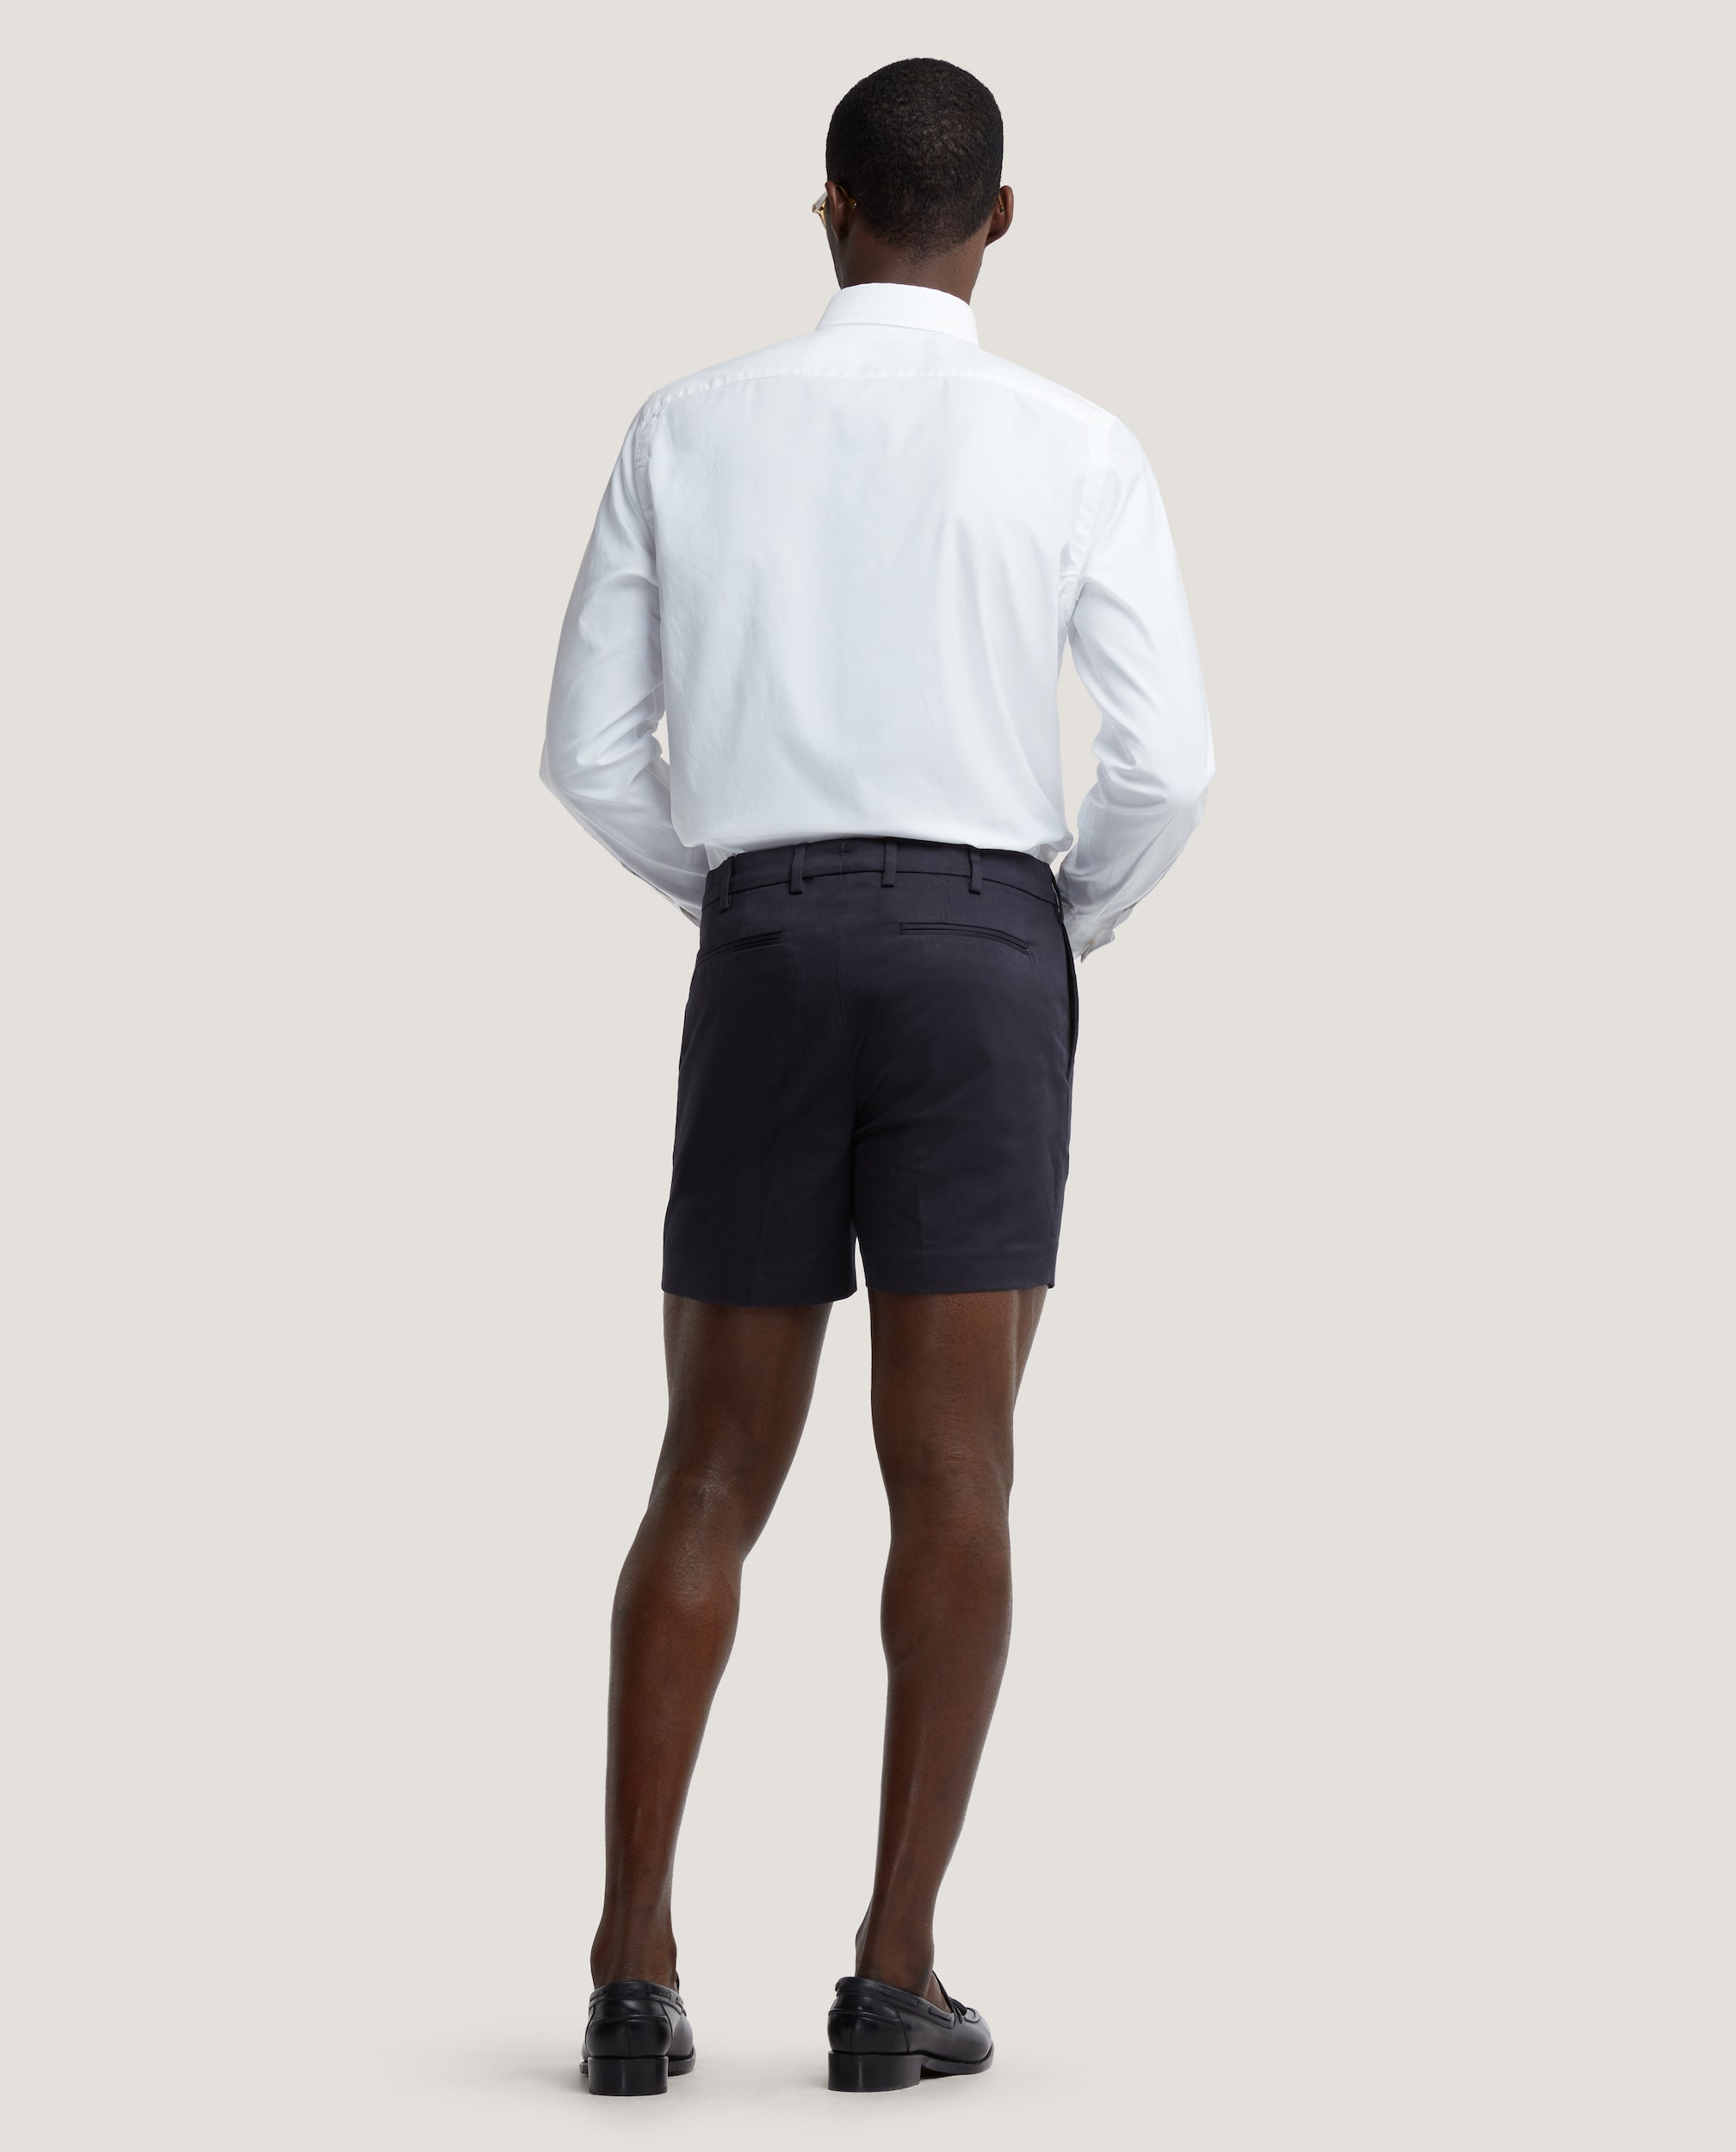 FLORIAN Chino shorts | Short length | Cotton twill | Night Blue